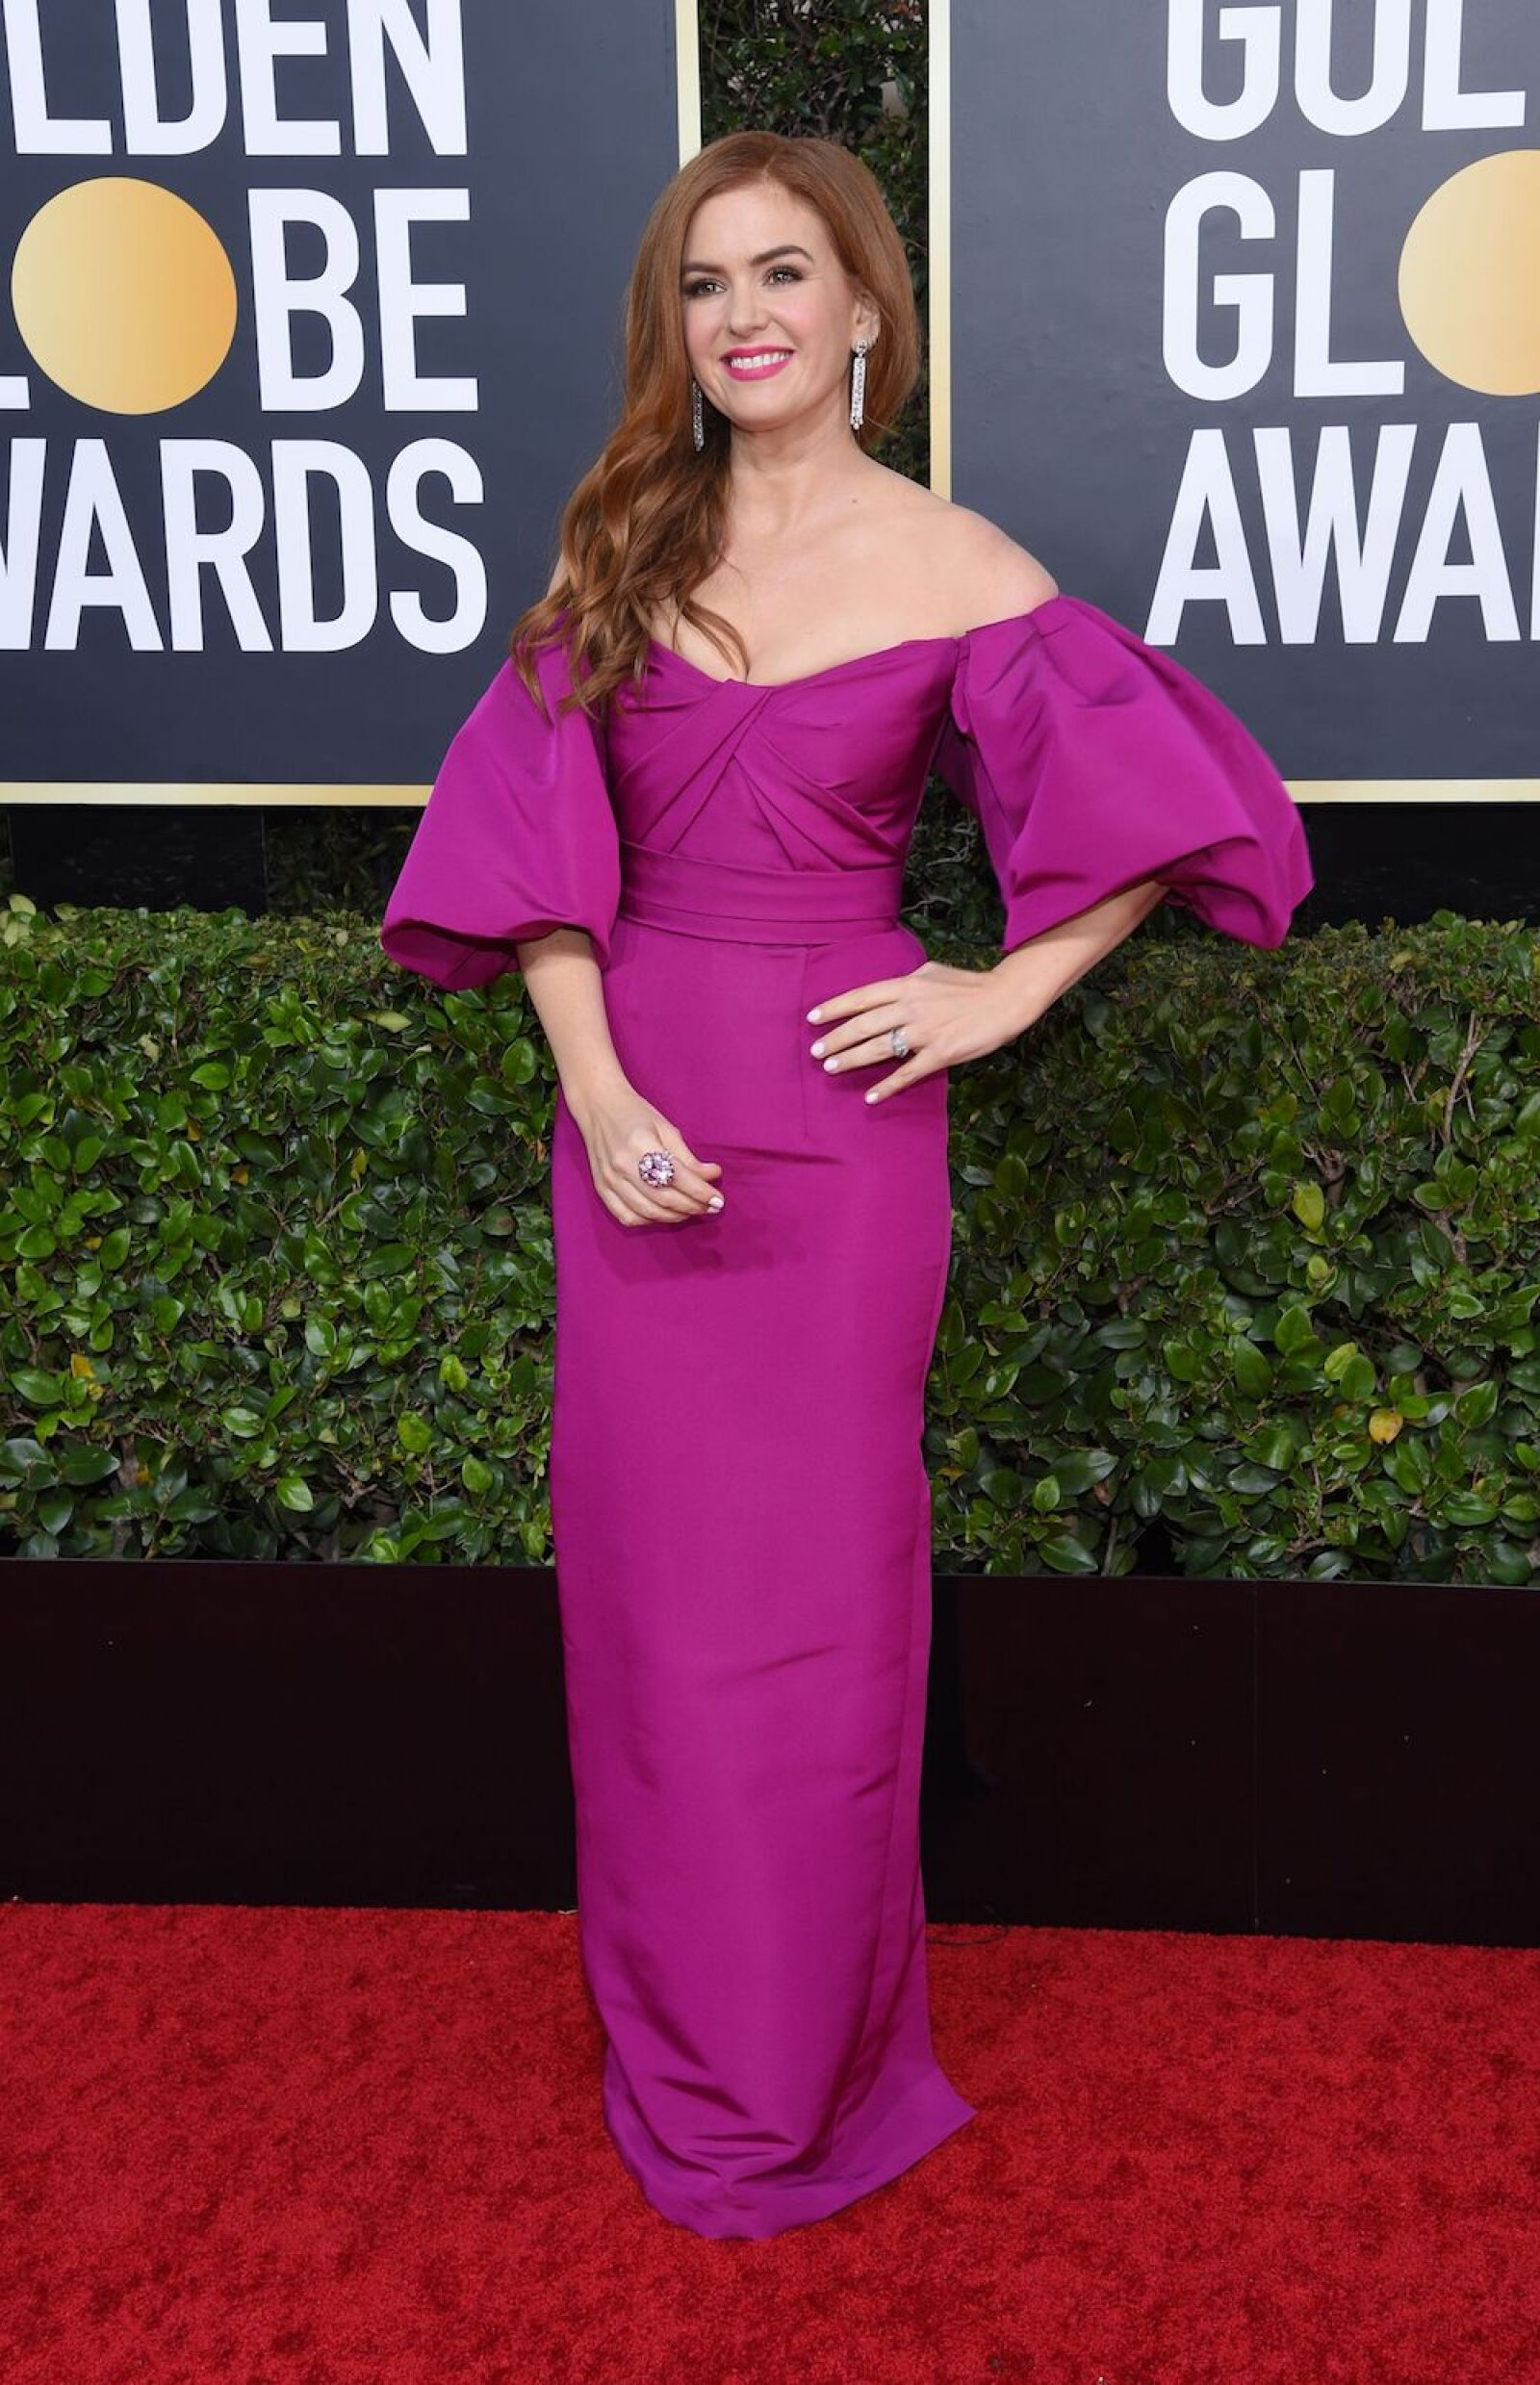 Isla Fisher en Monique Lhuillier